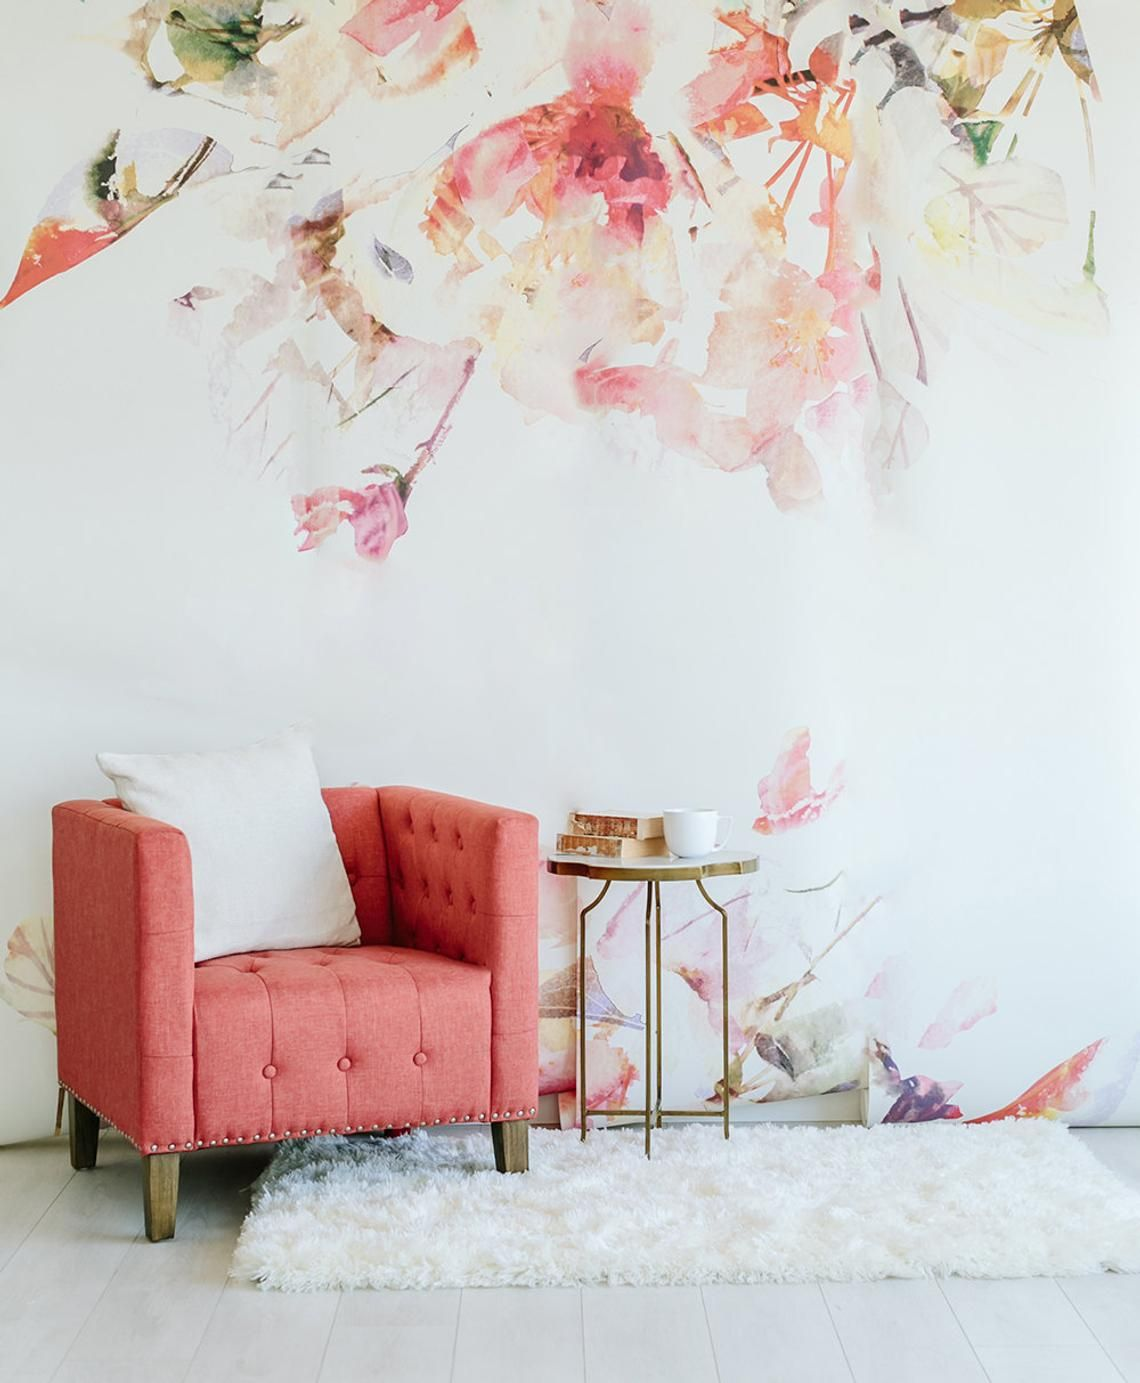 spring floral large wall mural, watercolor wallpaper in 2019spring floral large wall mural watercolor wallpaper etsy